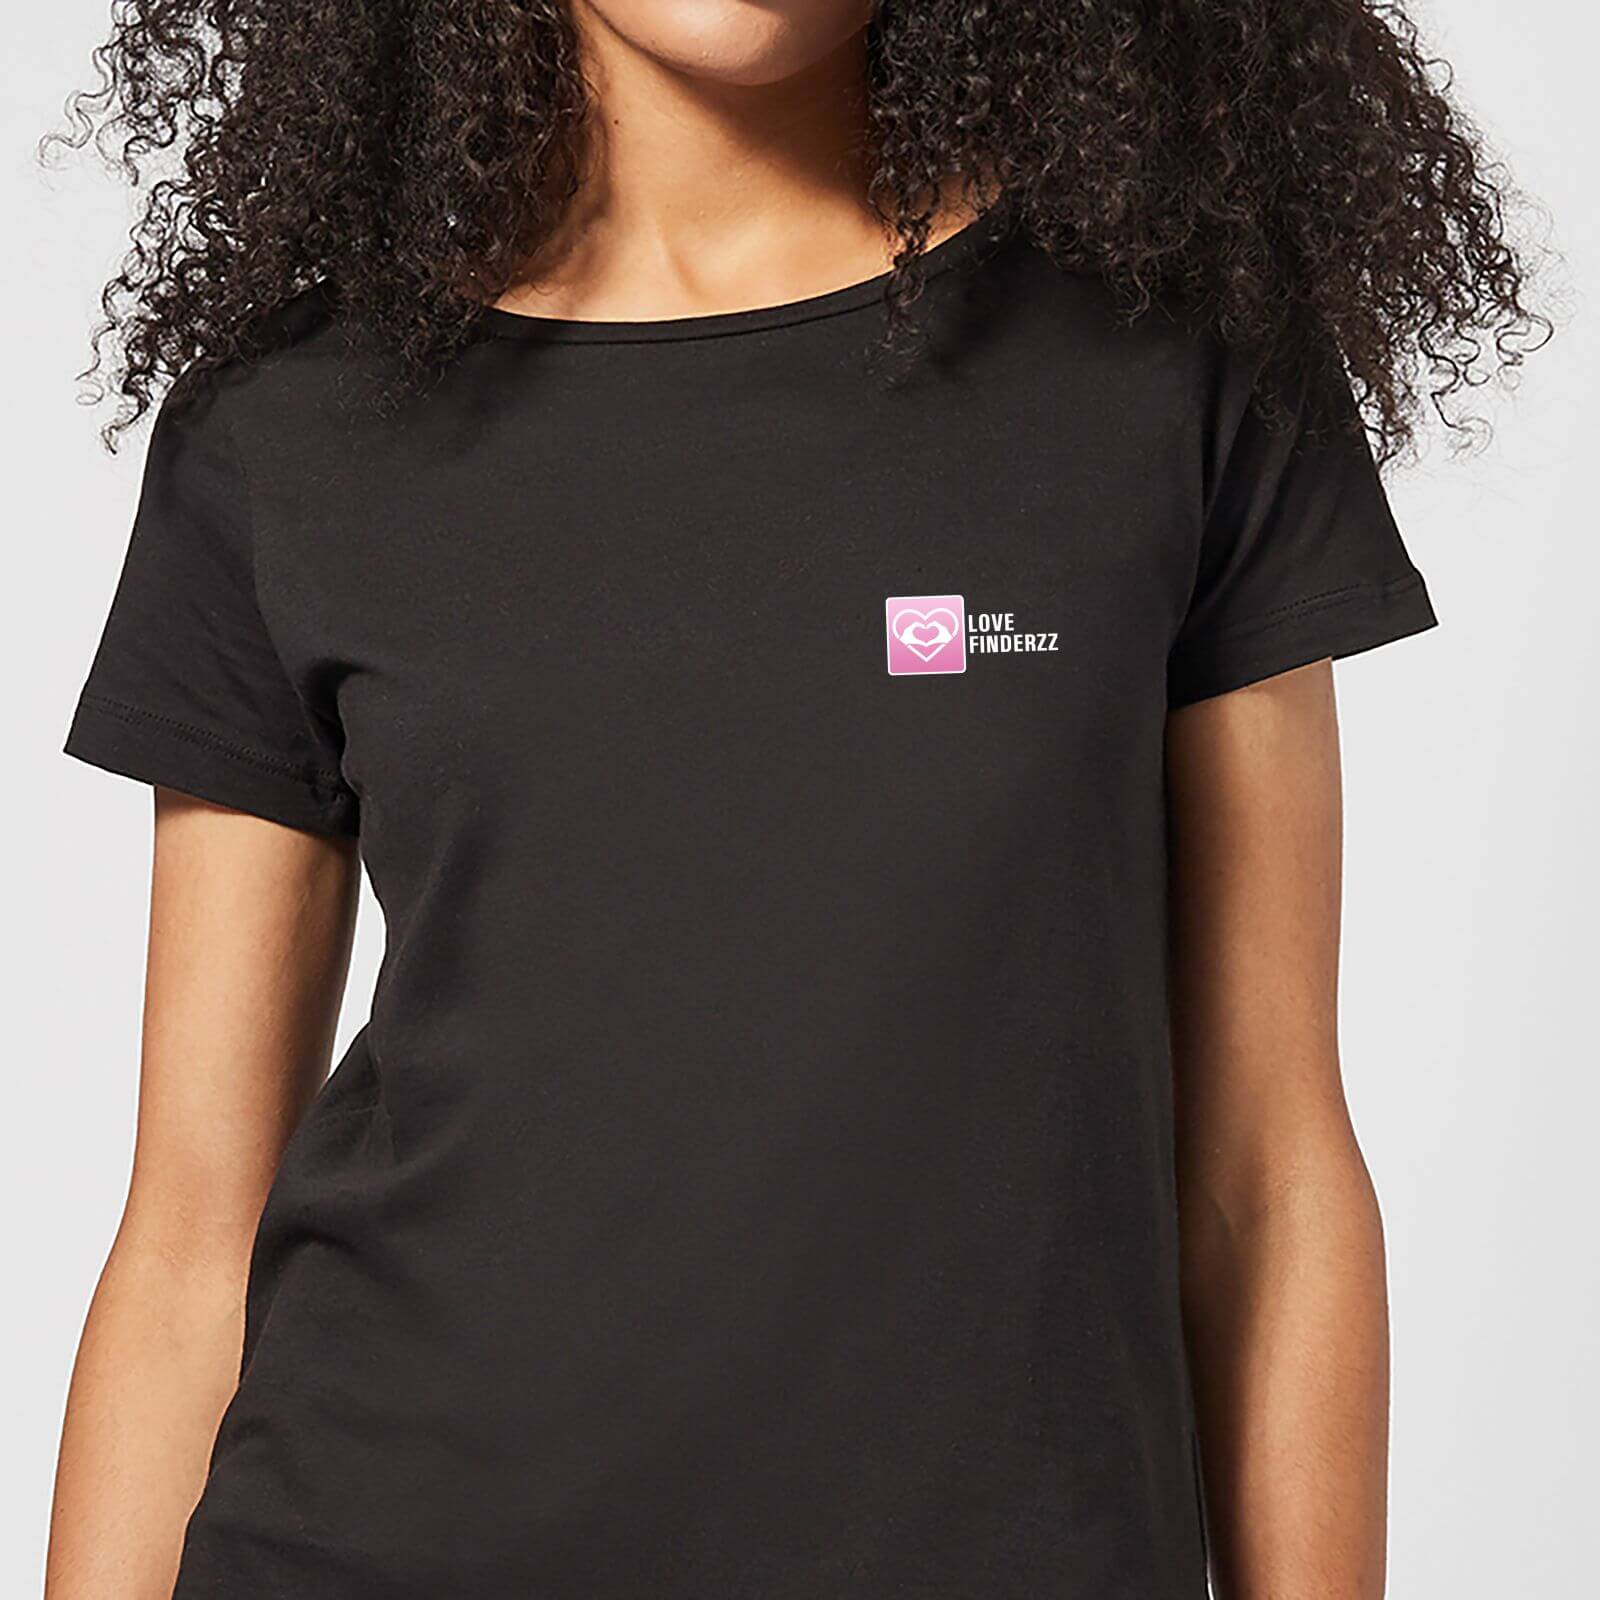 Rick and Morty Love-Finders Women's T-Shirt - Black - XL - Negro de Rick and Morty